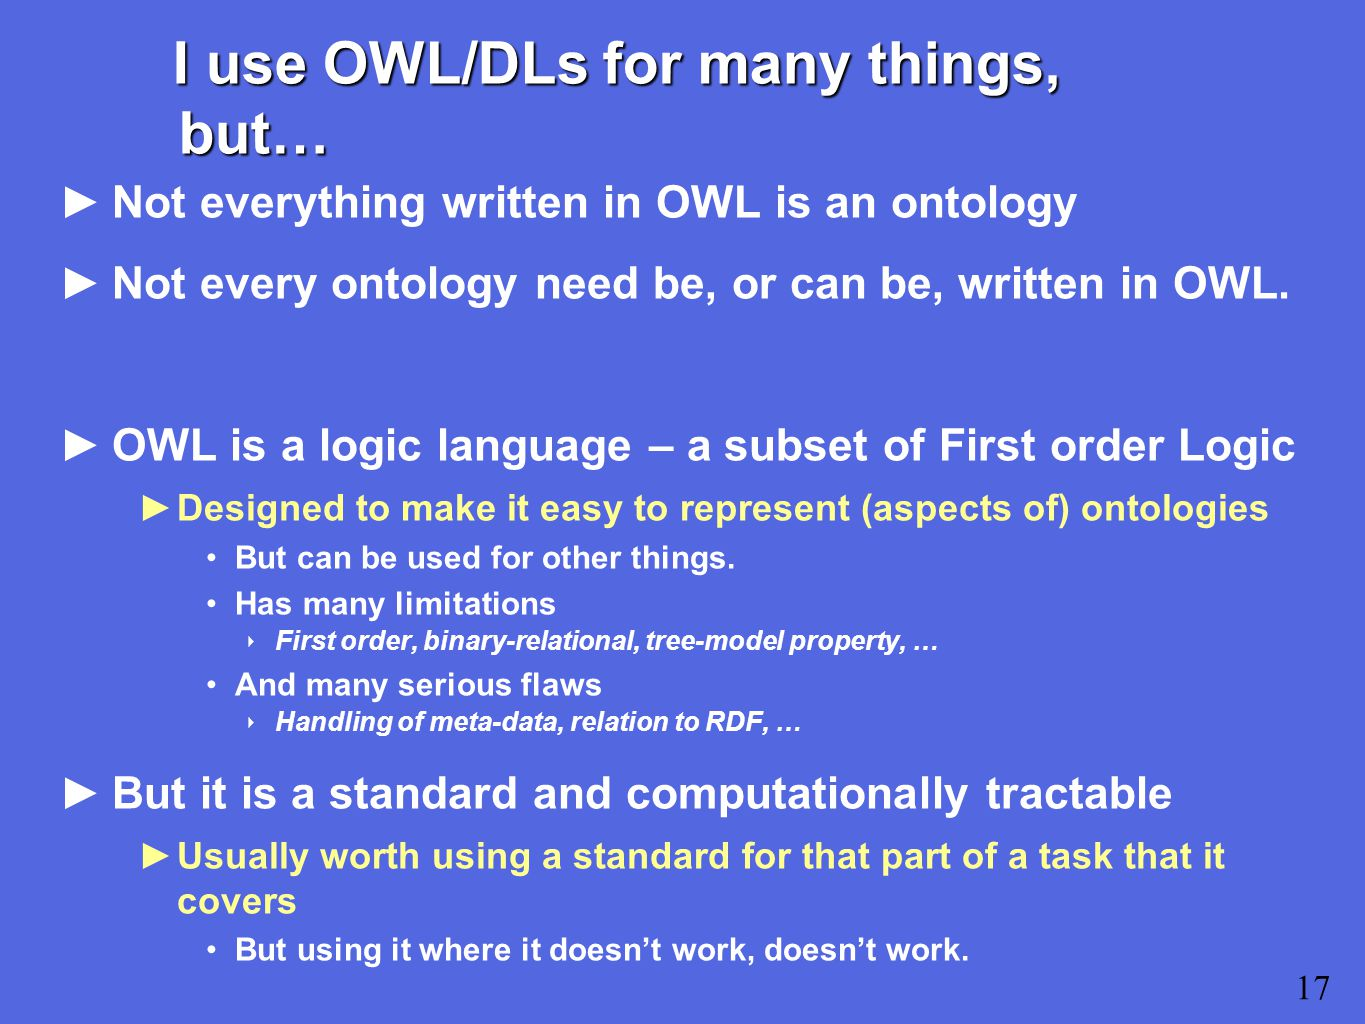 I use OWL/DLs for many things, but… ►Not everything written in OWL is an ontology ►Not every ontology need be, or can be, written in OWL.